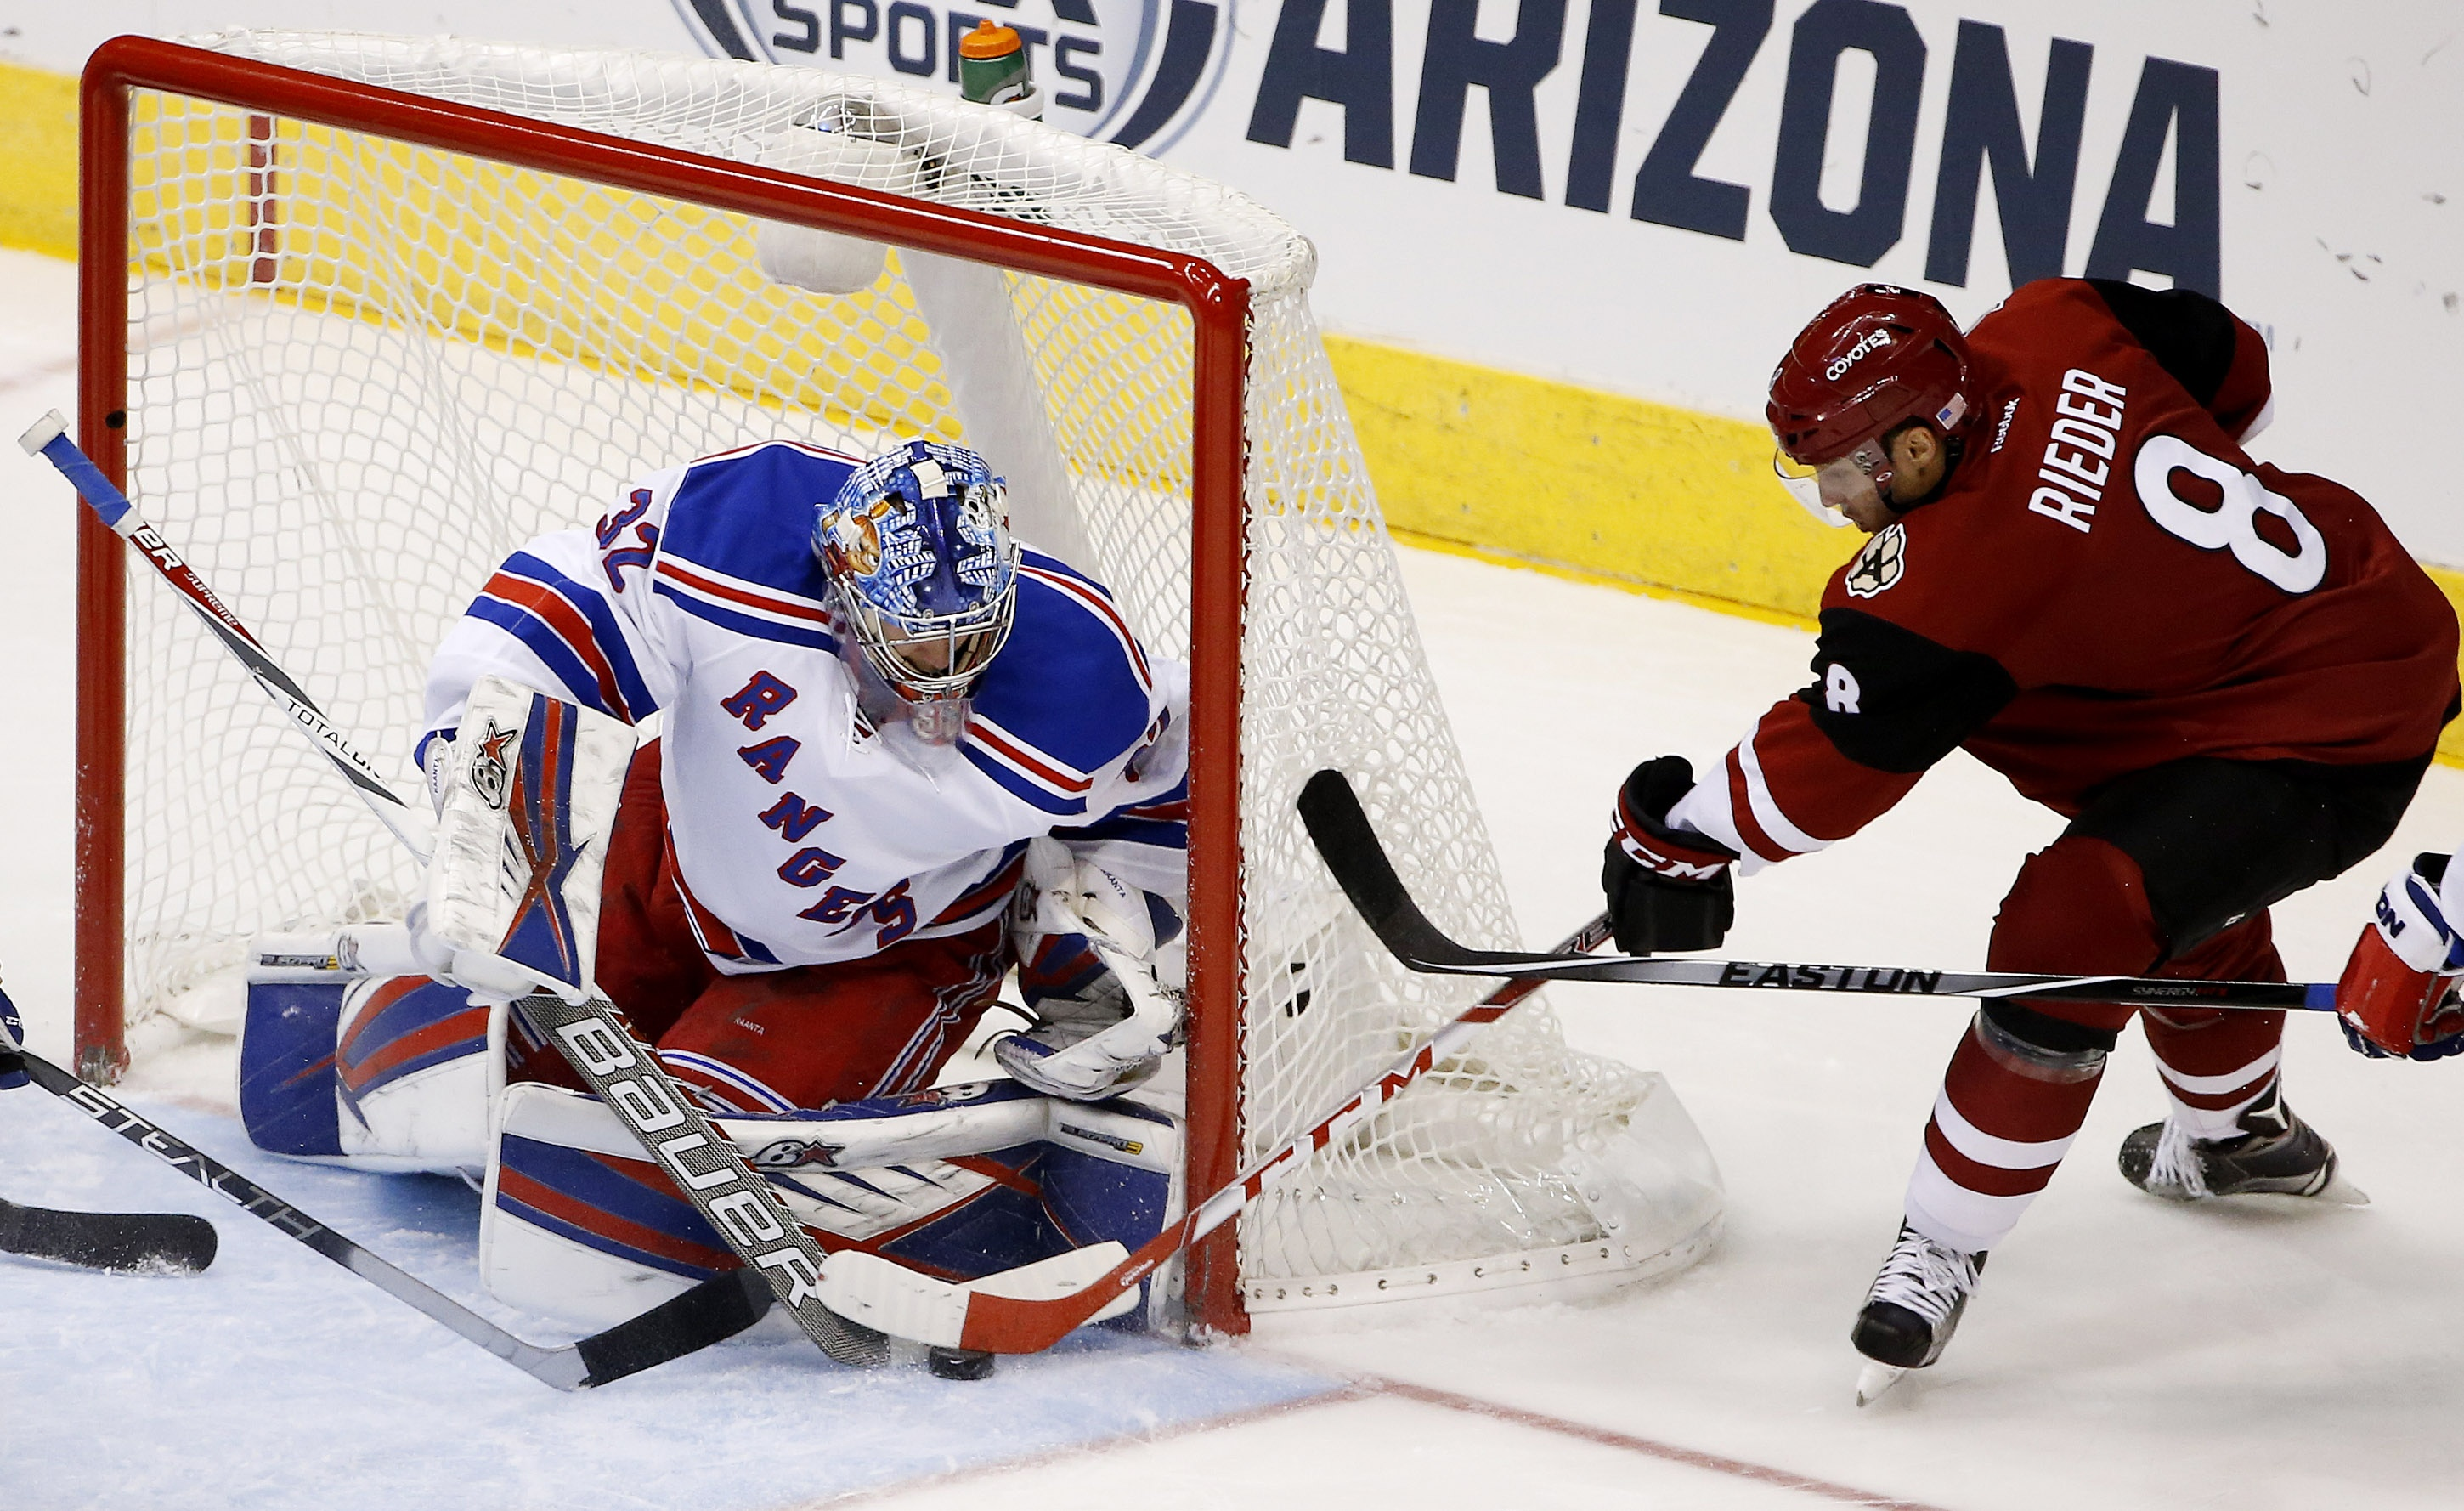 New York Rangers' Antti Raanta (32), of Finland, makes a save on a shot by Arizona Coyotes' Tobias Rieder (8), of Germany, during the first period of an NHL hockey game Saturday, Nov. 7, 2015, in Glendale, Ariz. (AP Photo/Ross D. Franklin)